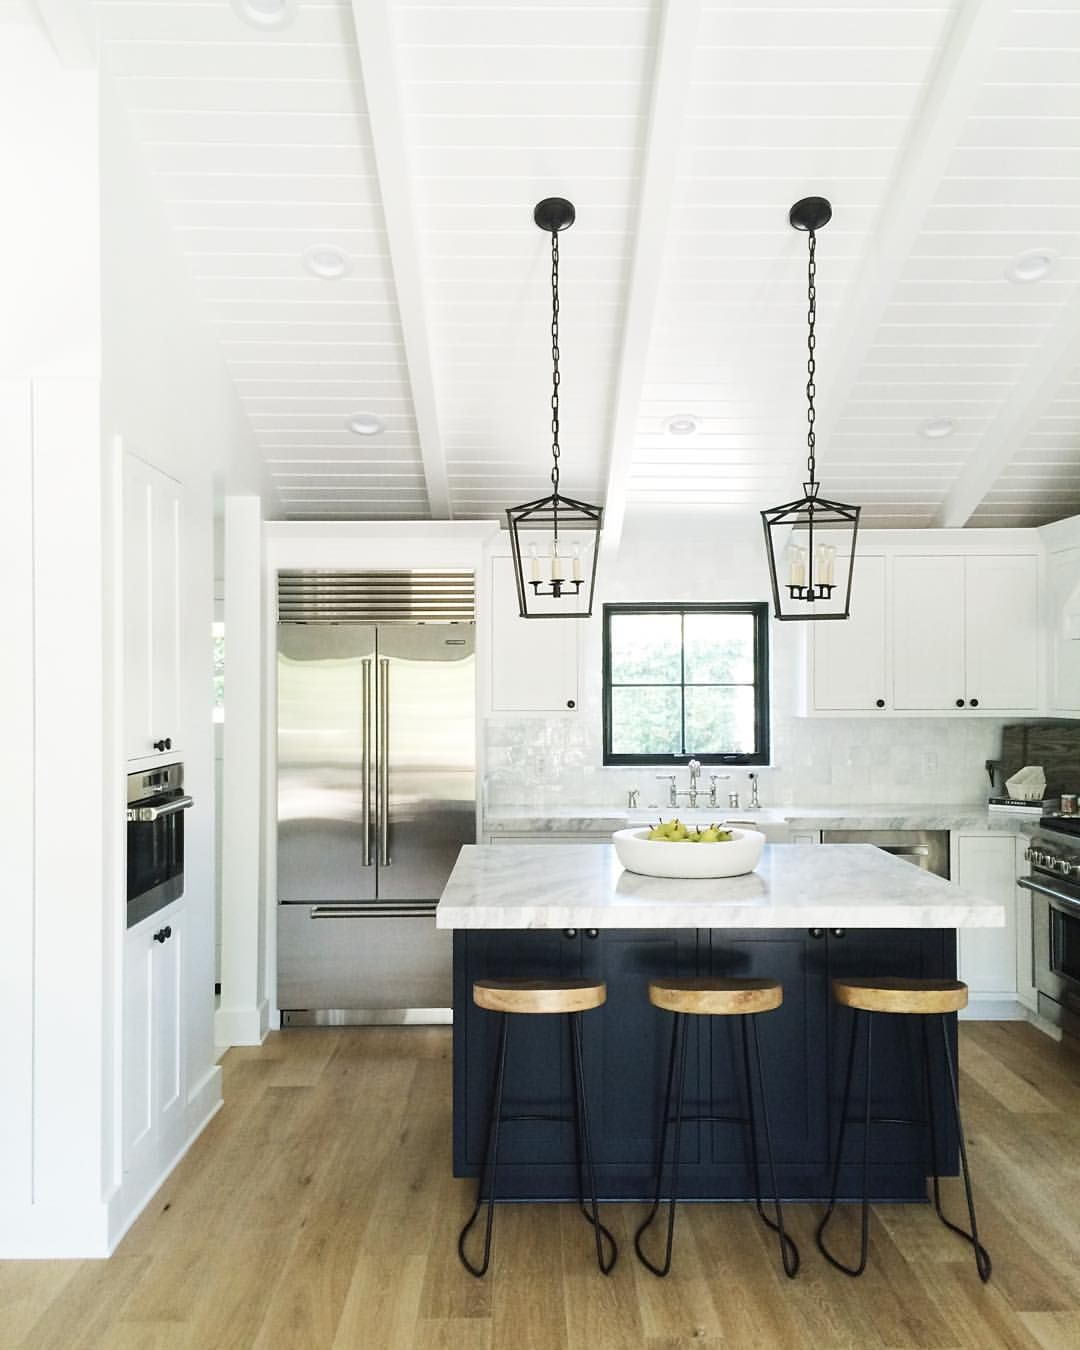 White outer cabinets, black/dark island | The land | Pinterest ...